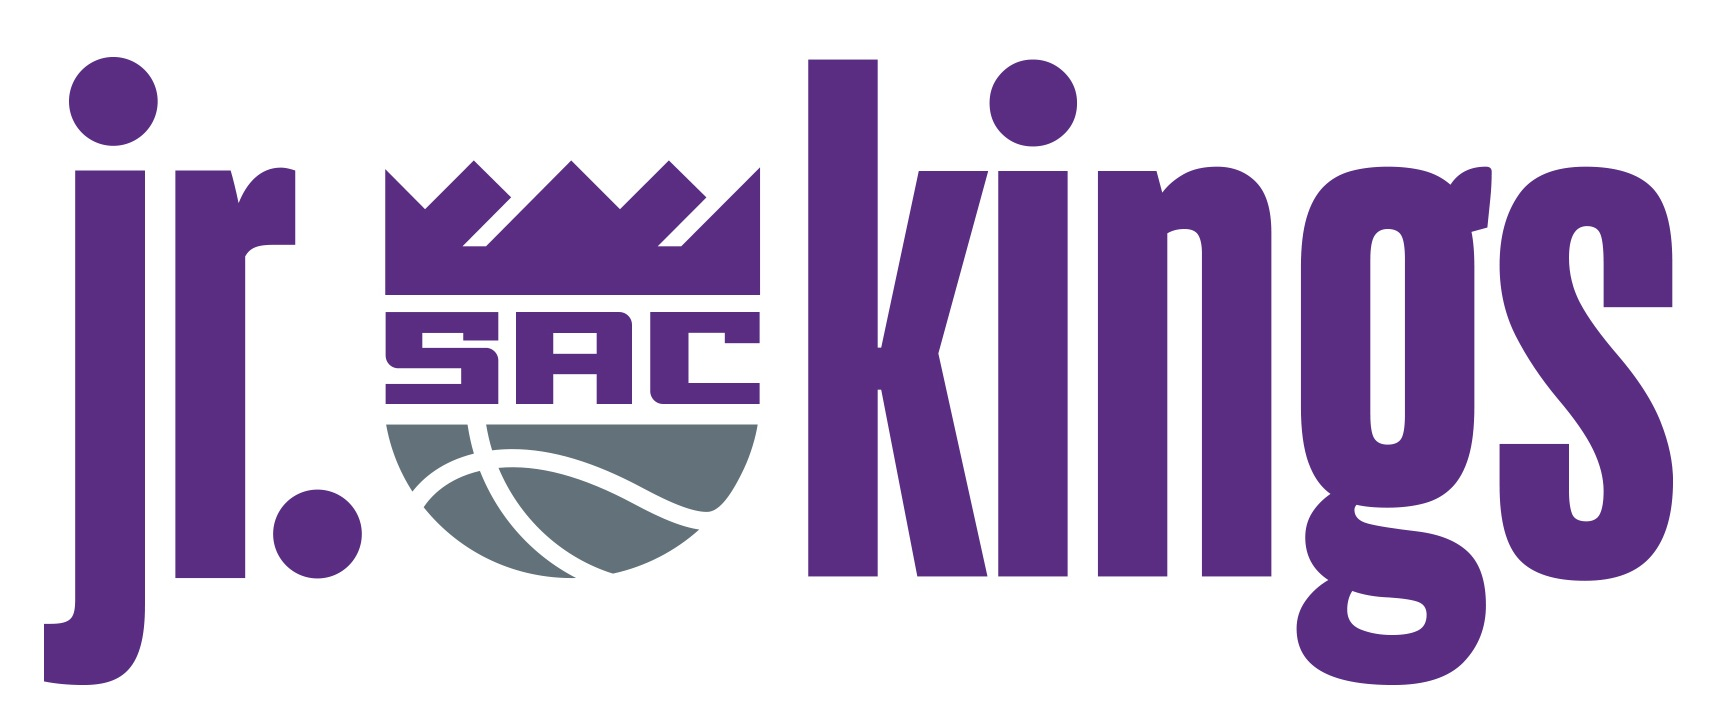 sacramento-kings-jr-kings.jpg